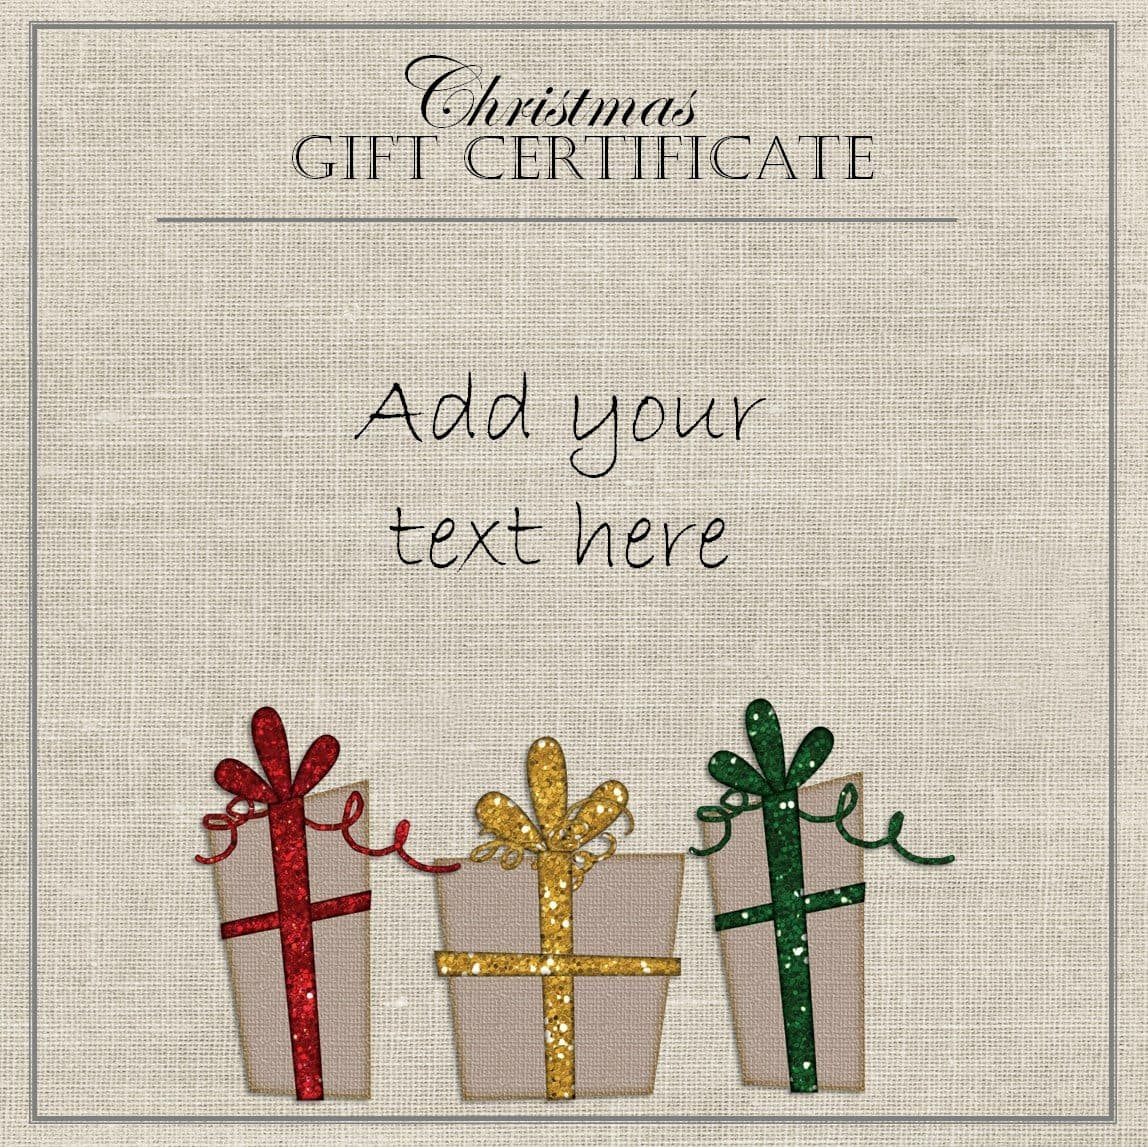 Free christmas gift certificate template customize online download elegant gift certificate template with three gifts with red yellow and green ribbons yadclub Gallery